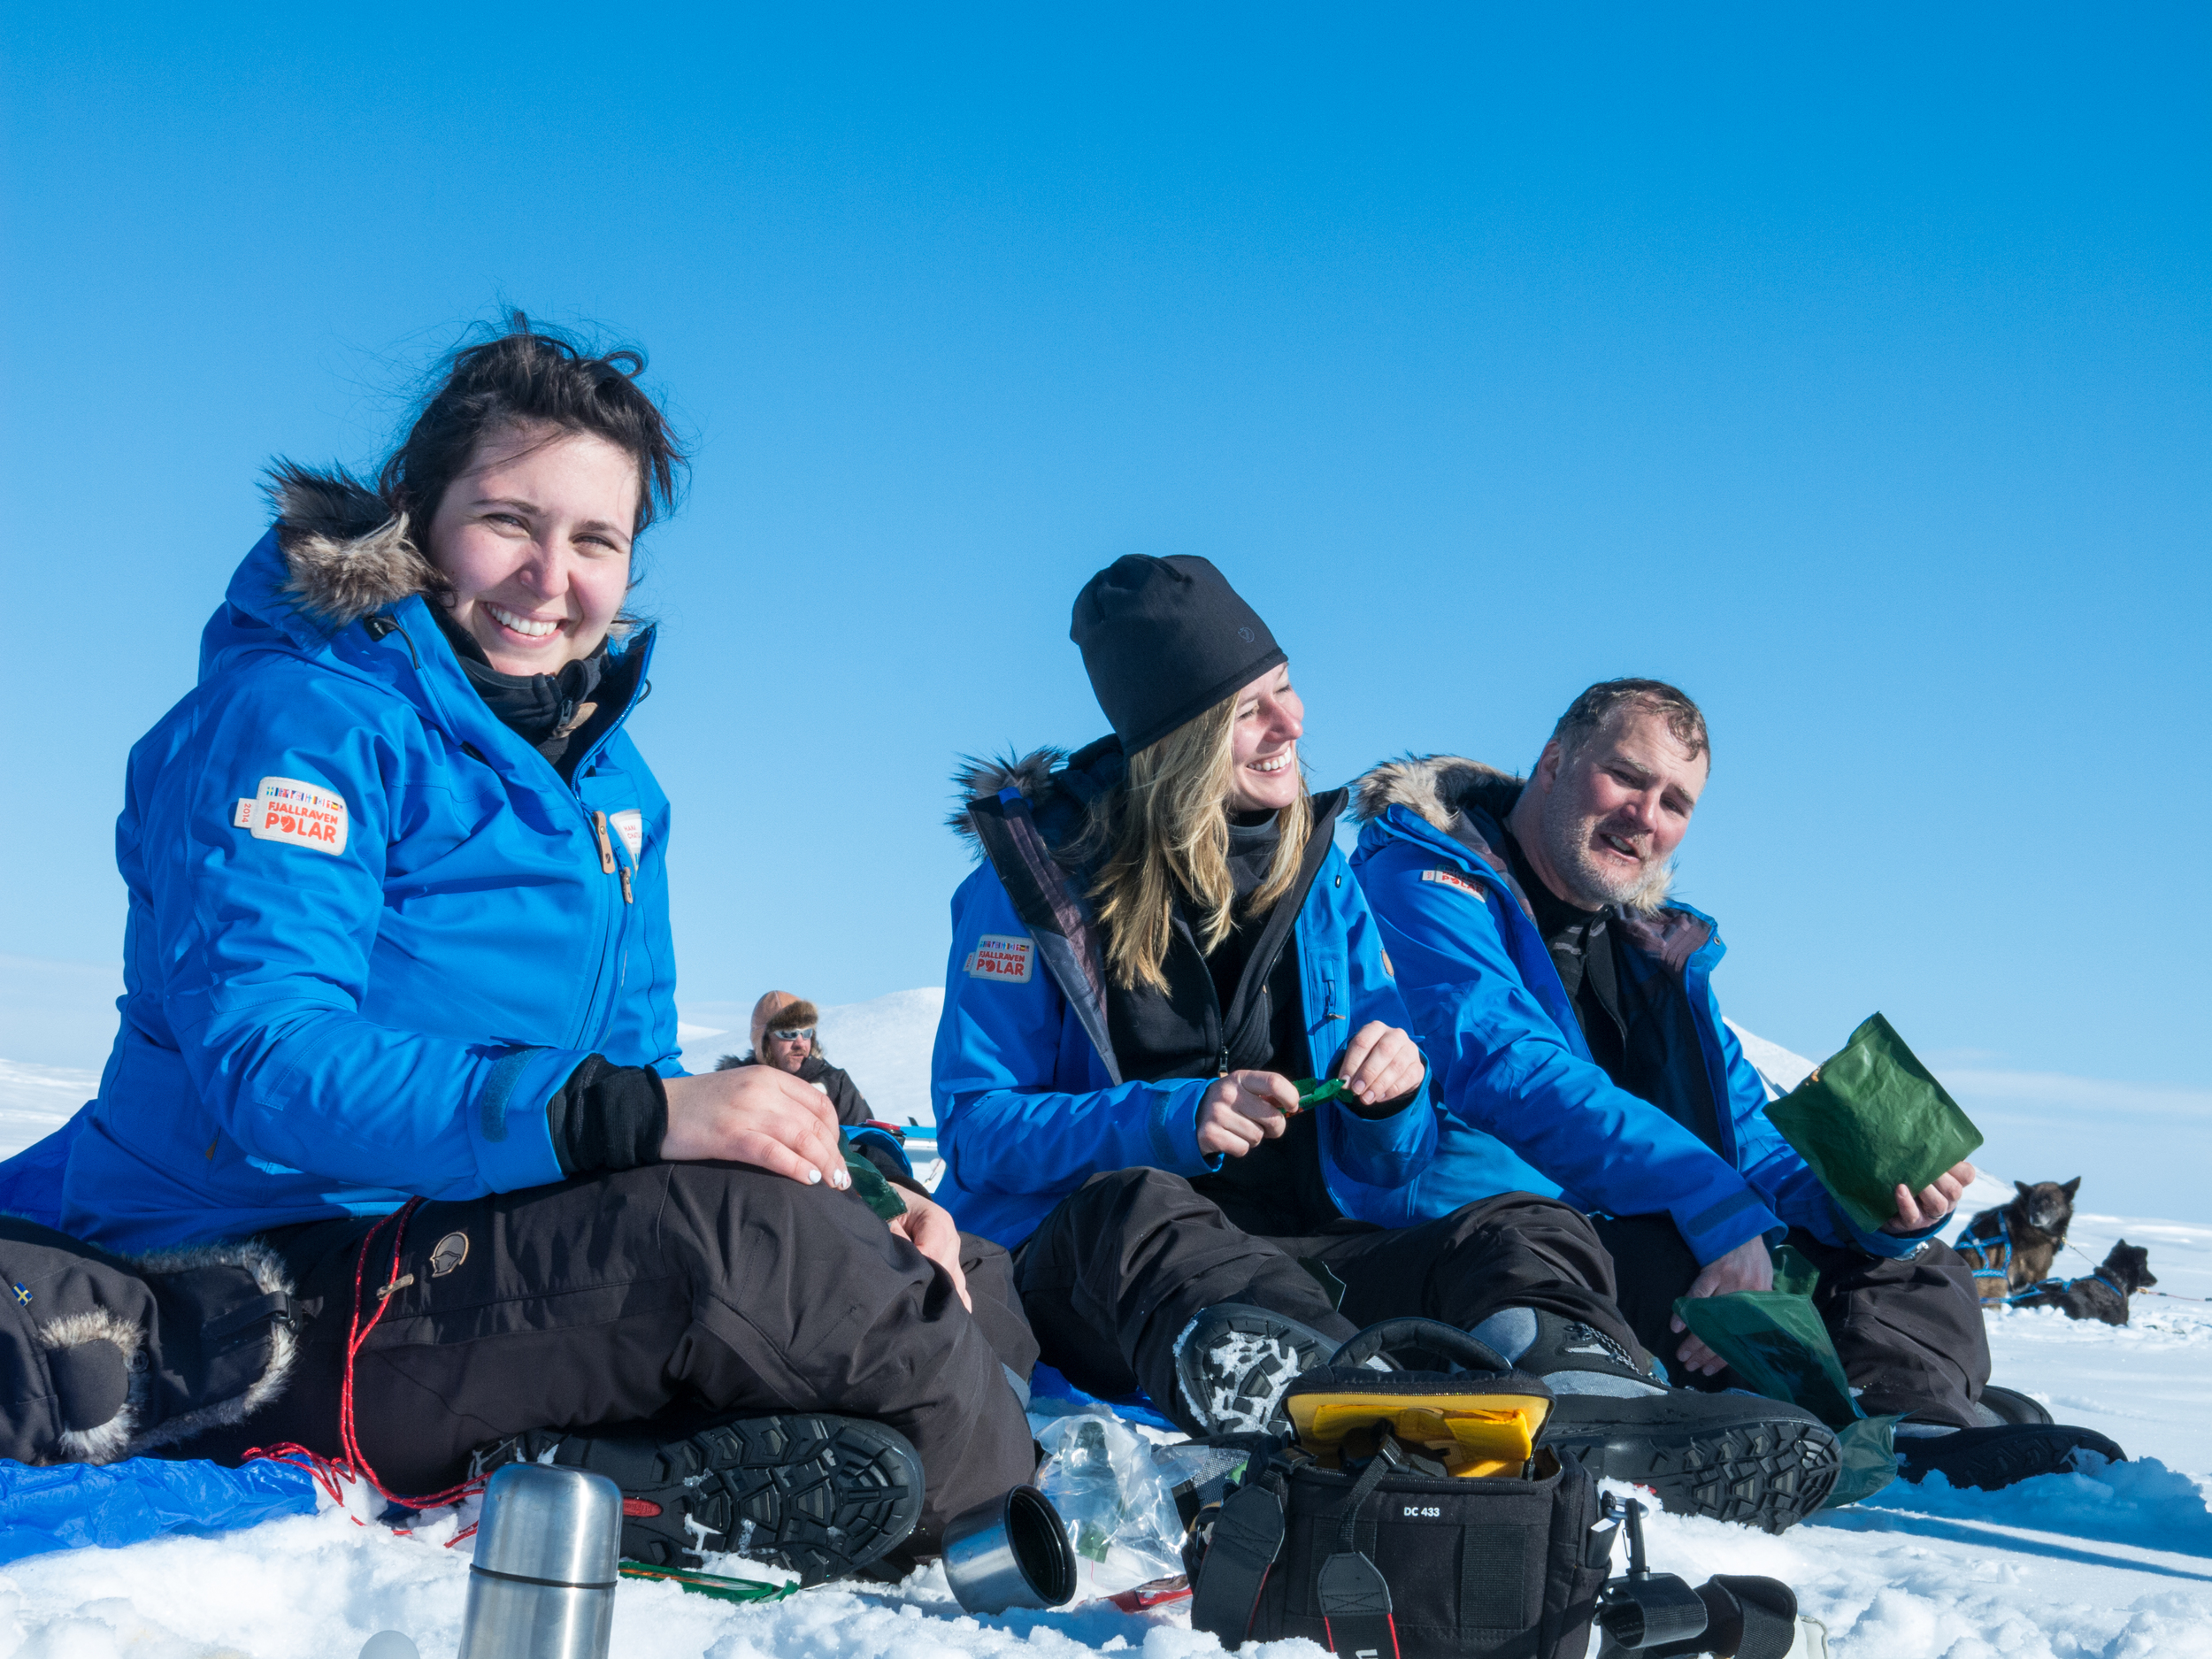 I soak up some sun during a brief lunch break with teammates Hana Chatila (Sweden) and Greg Lindstrom (USA). (Photo by Madeleine Hanssen. All rights reserved.)